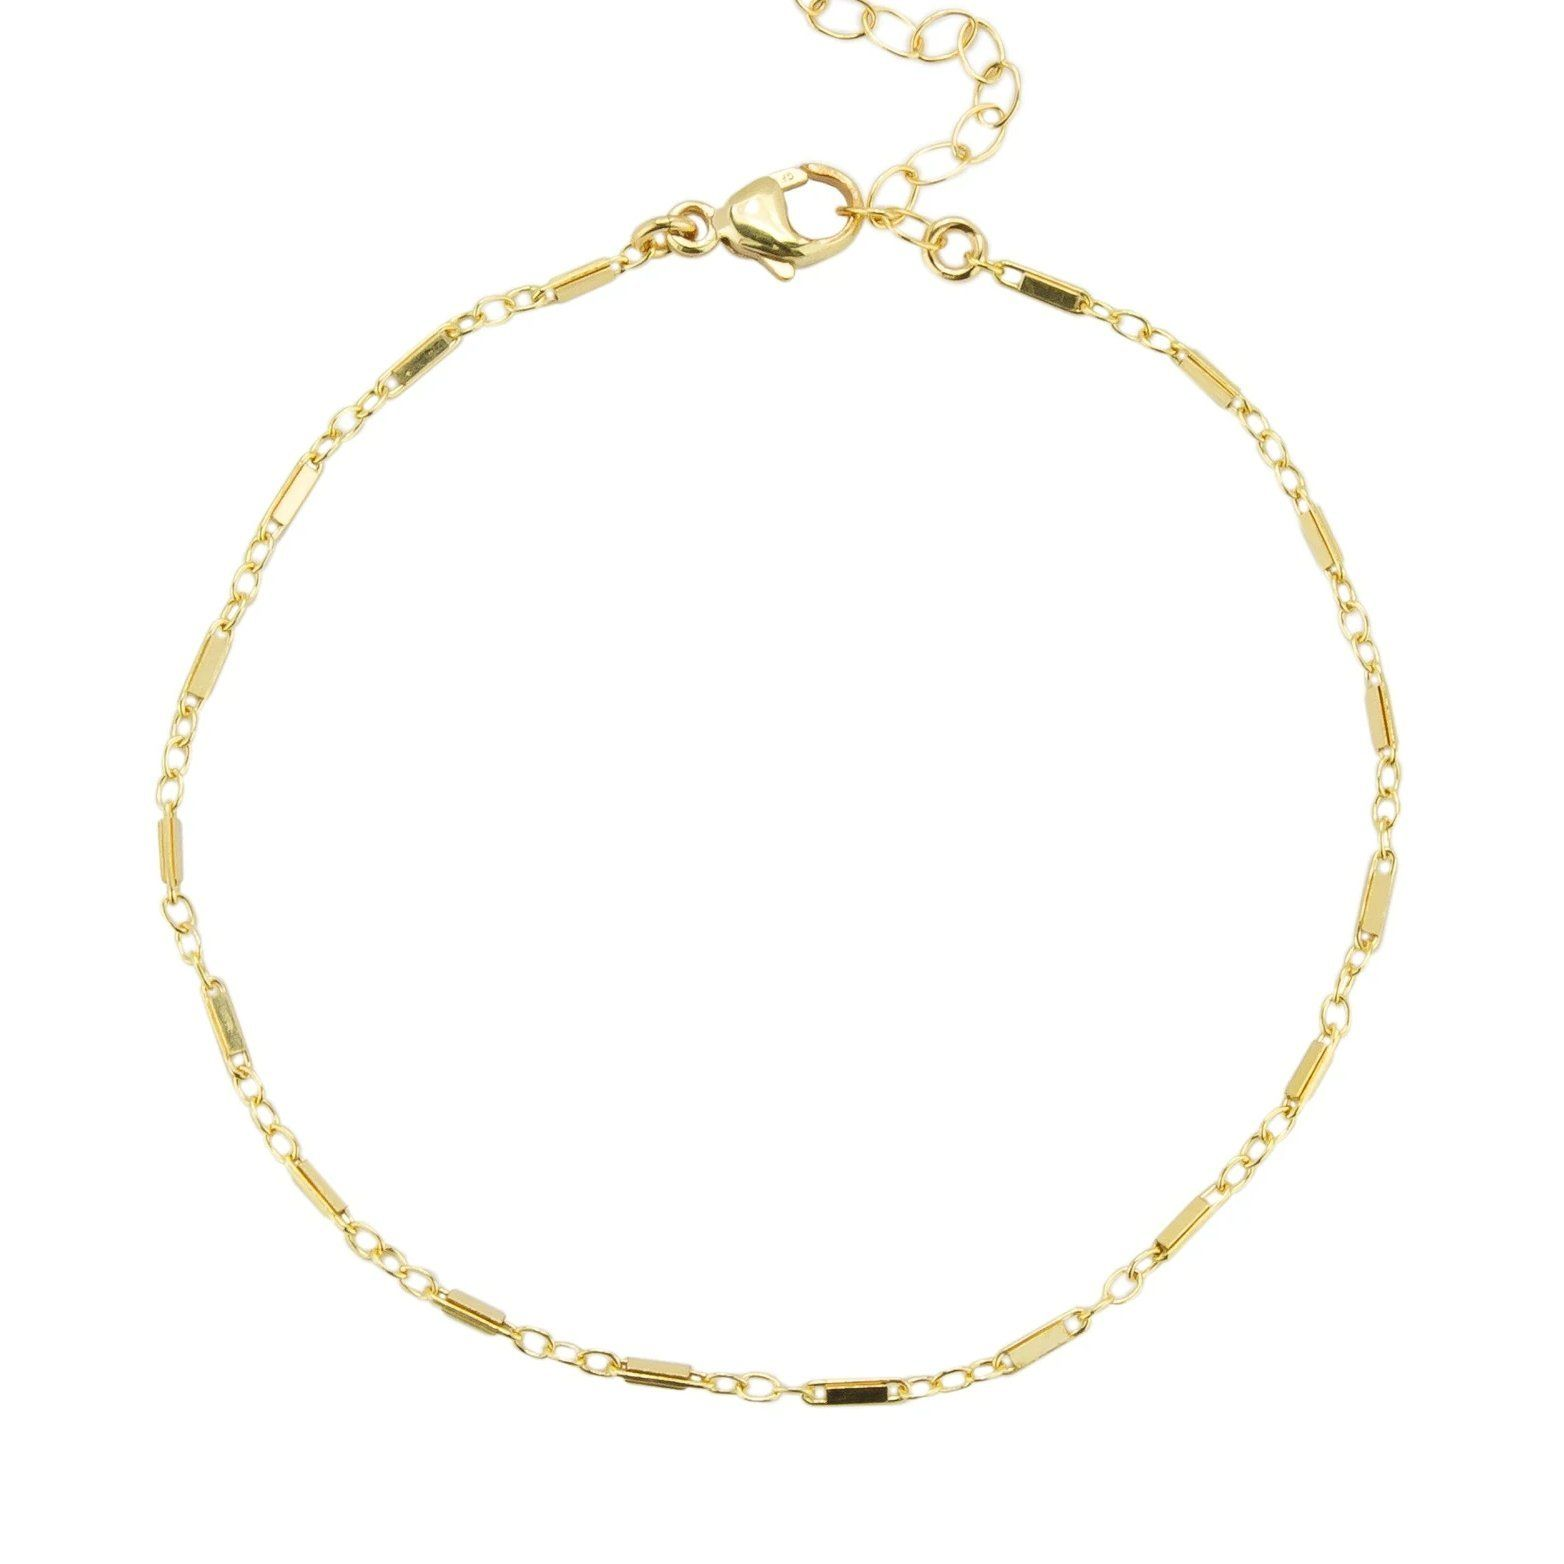 Your new favorite gold bracelet. Simple yet refined and pairs perfectly with any jewelry!  Handmade in California by Katie Dean Jewelry.